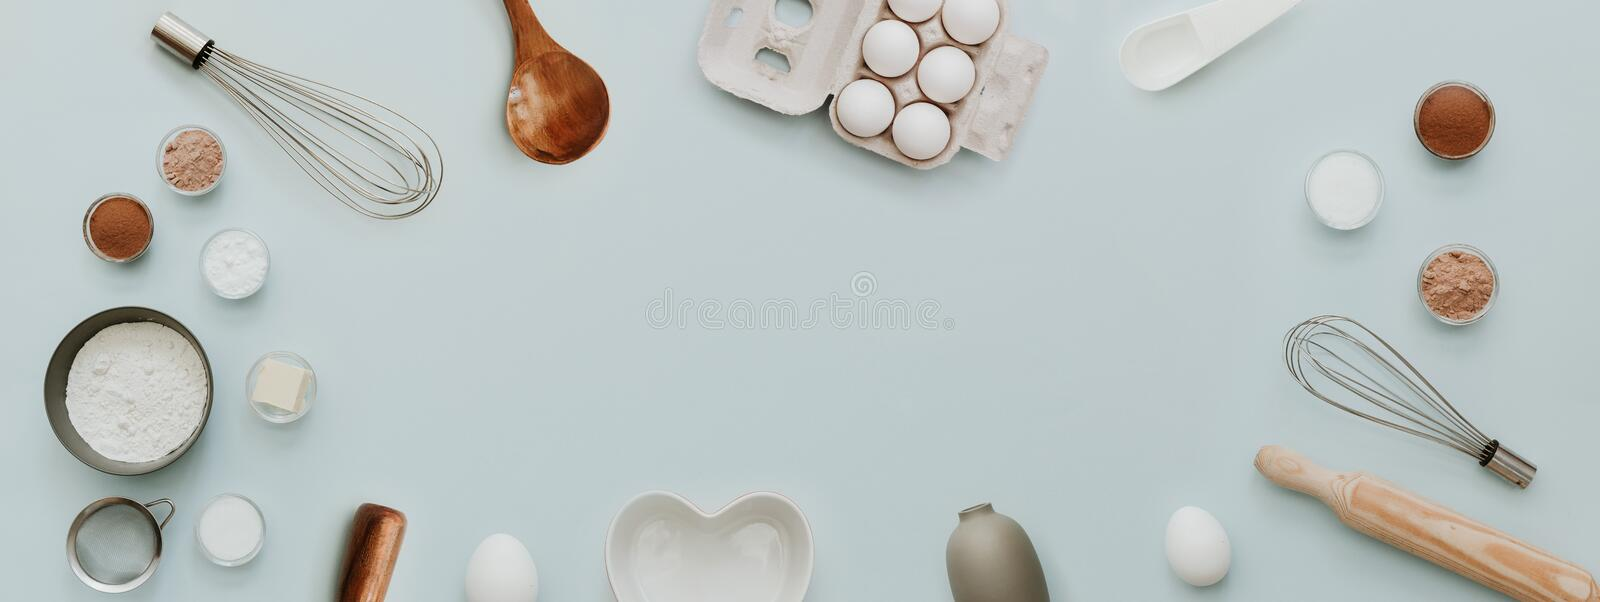 Baking background with bake ingredients, banner for website on pastel background, top view royalty free stock image